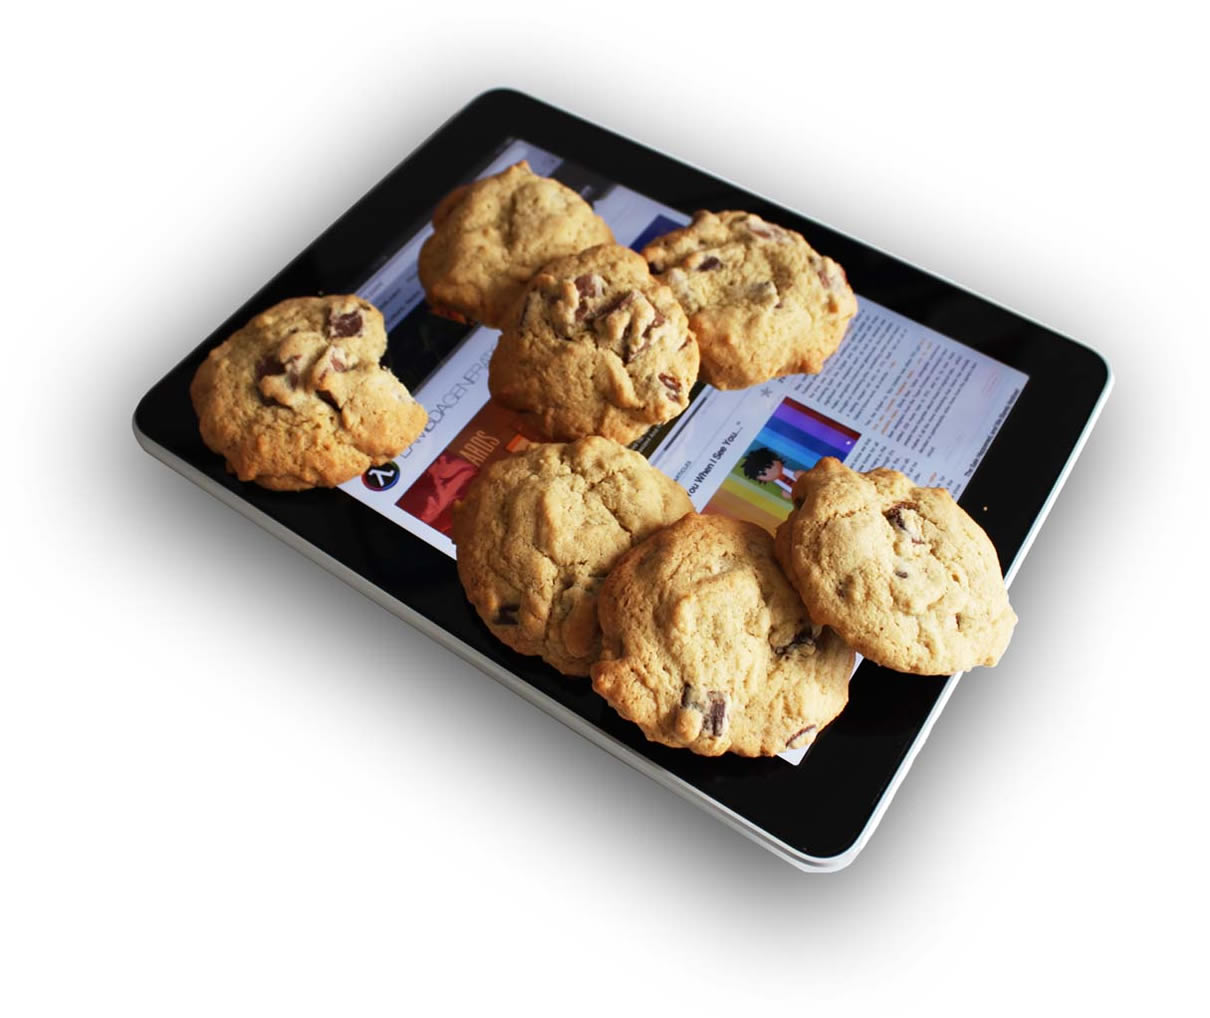 A picture of some cookies on LambdaGeneration.